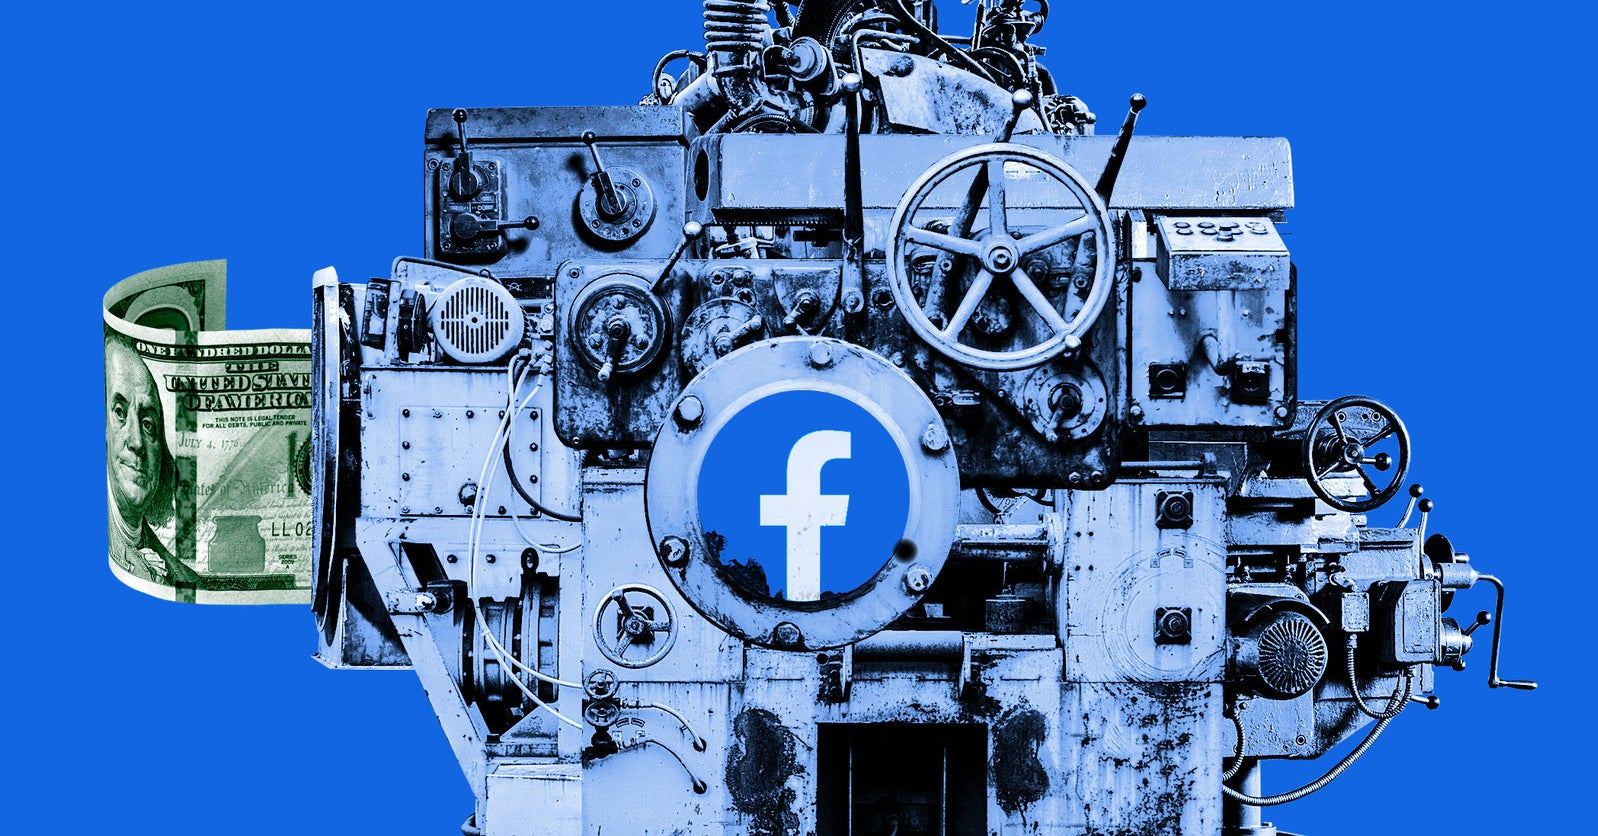 Facebook's Global Ad Machine Is The Company's $80 Billion Annual Lifeblood. Workers Say It Puts Profits Over People.